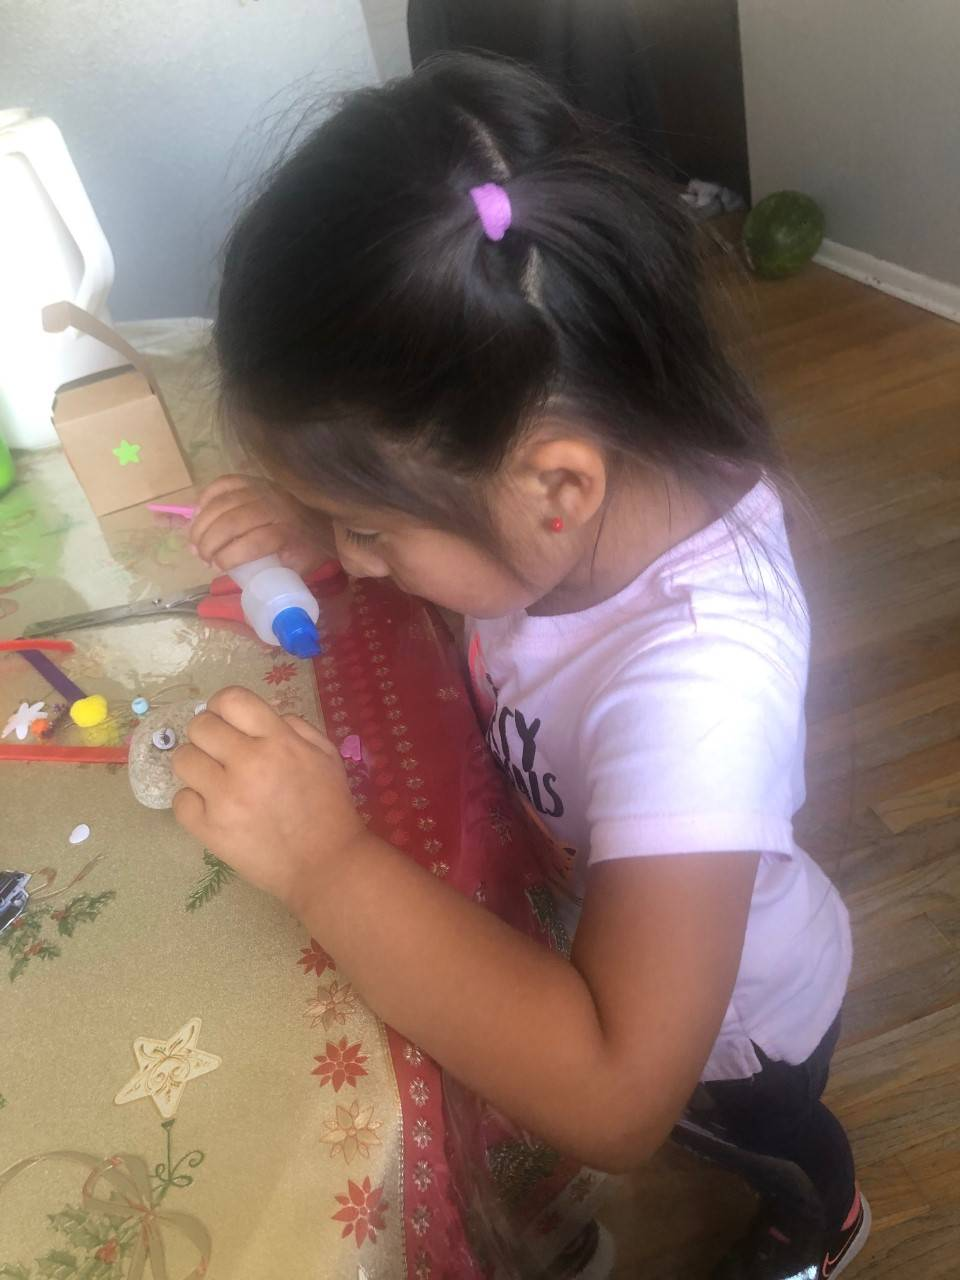 A little girl is finishing up her pet rock with glue.